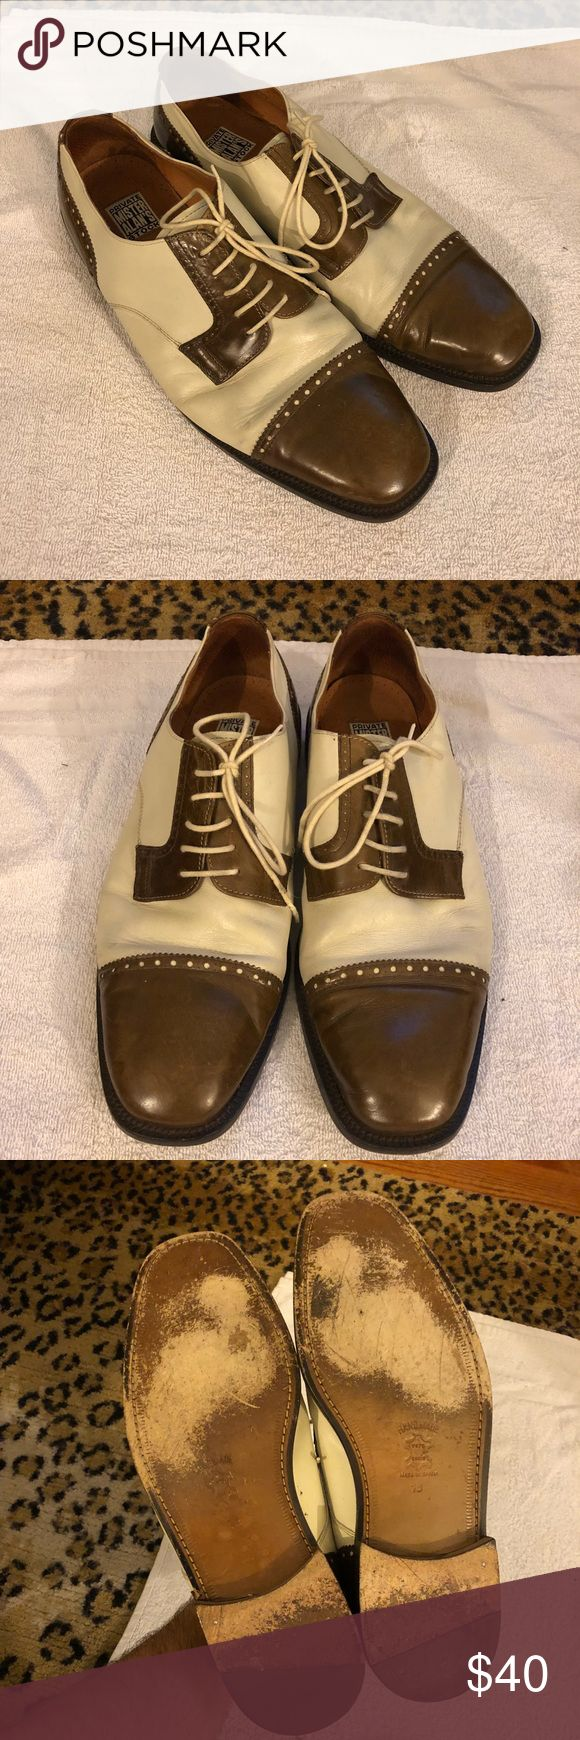 Mister Alan's Brown & Cream Cap-Toe Oxfords 13 M Mister Alan's Private Stock Brown and Cream Cap-Toe Oxfords size 13 M! Great condition! Please make reasonable offers and bundle! Ask questions :) Mister Alan's Shoes Oxfords & Derbys